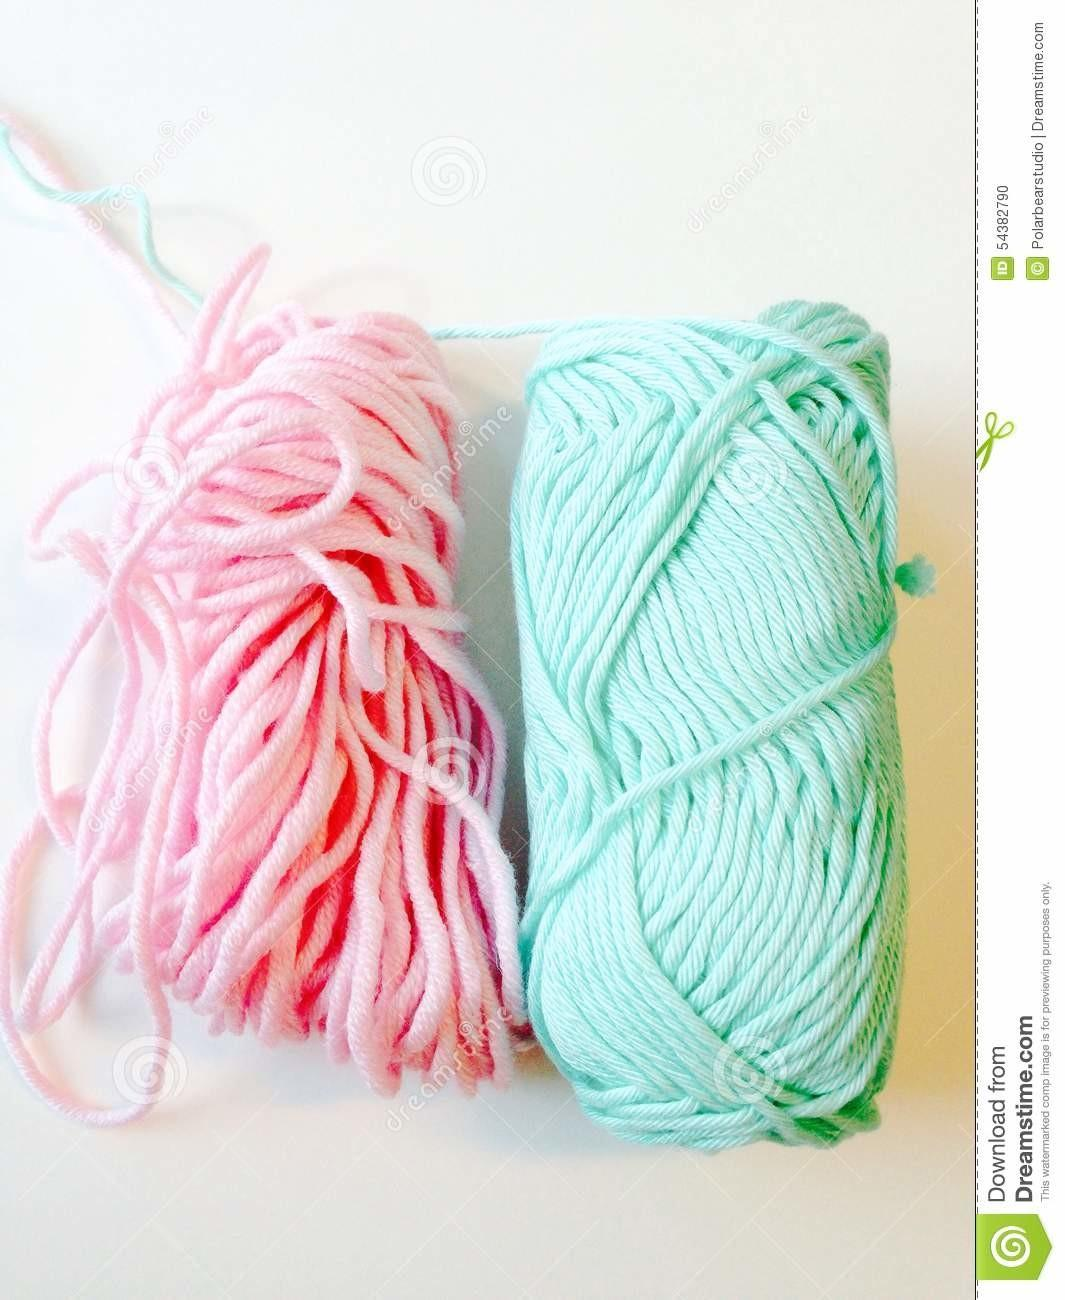 Pastel Color Yarns Stock